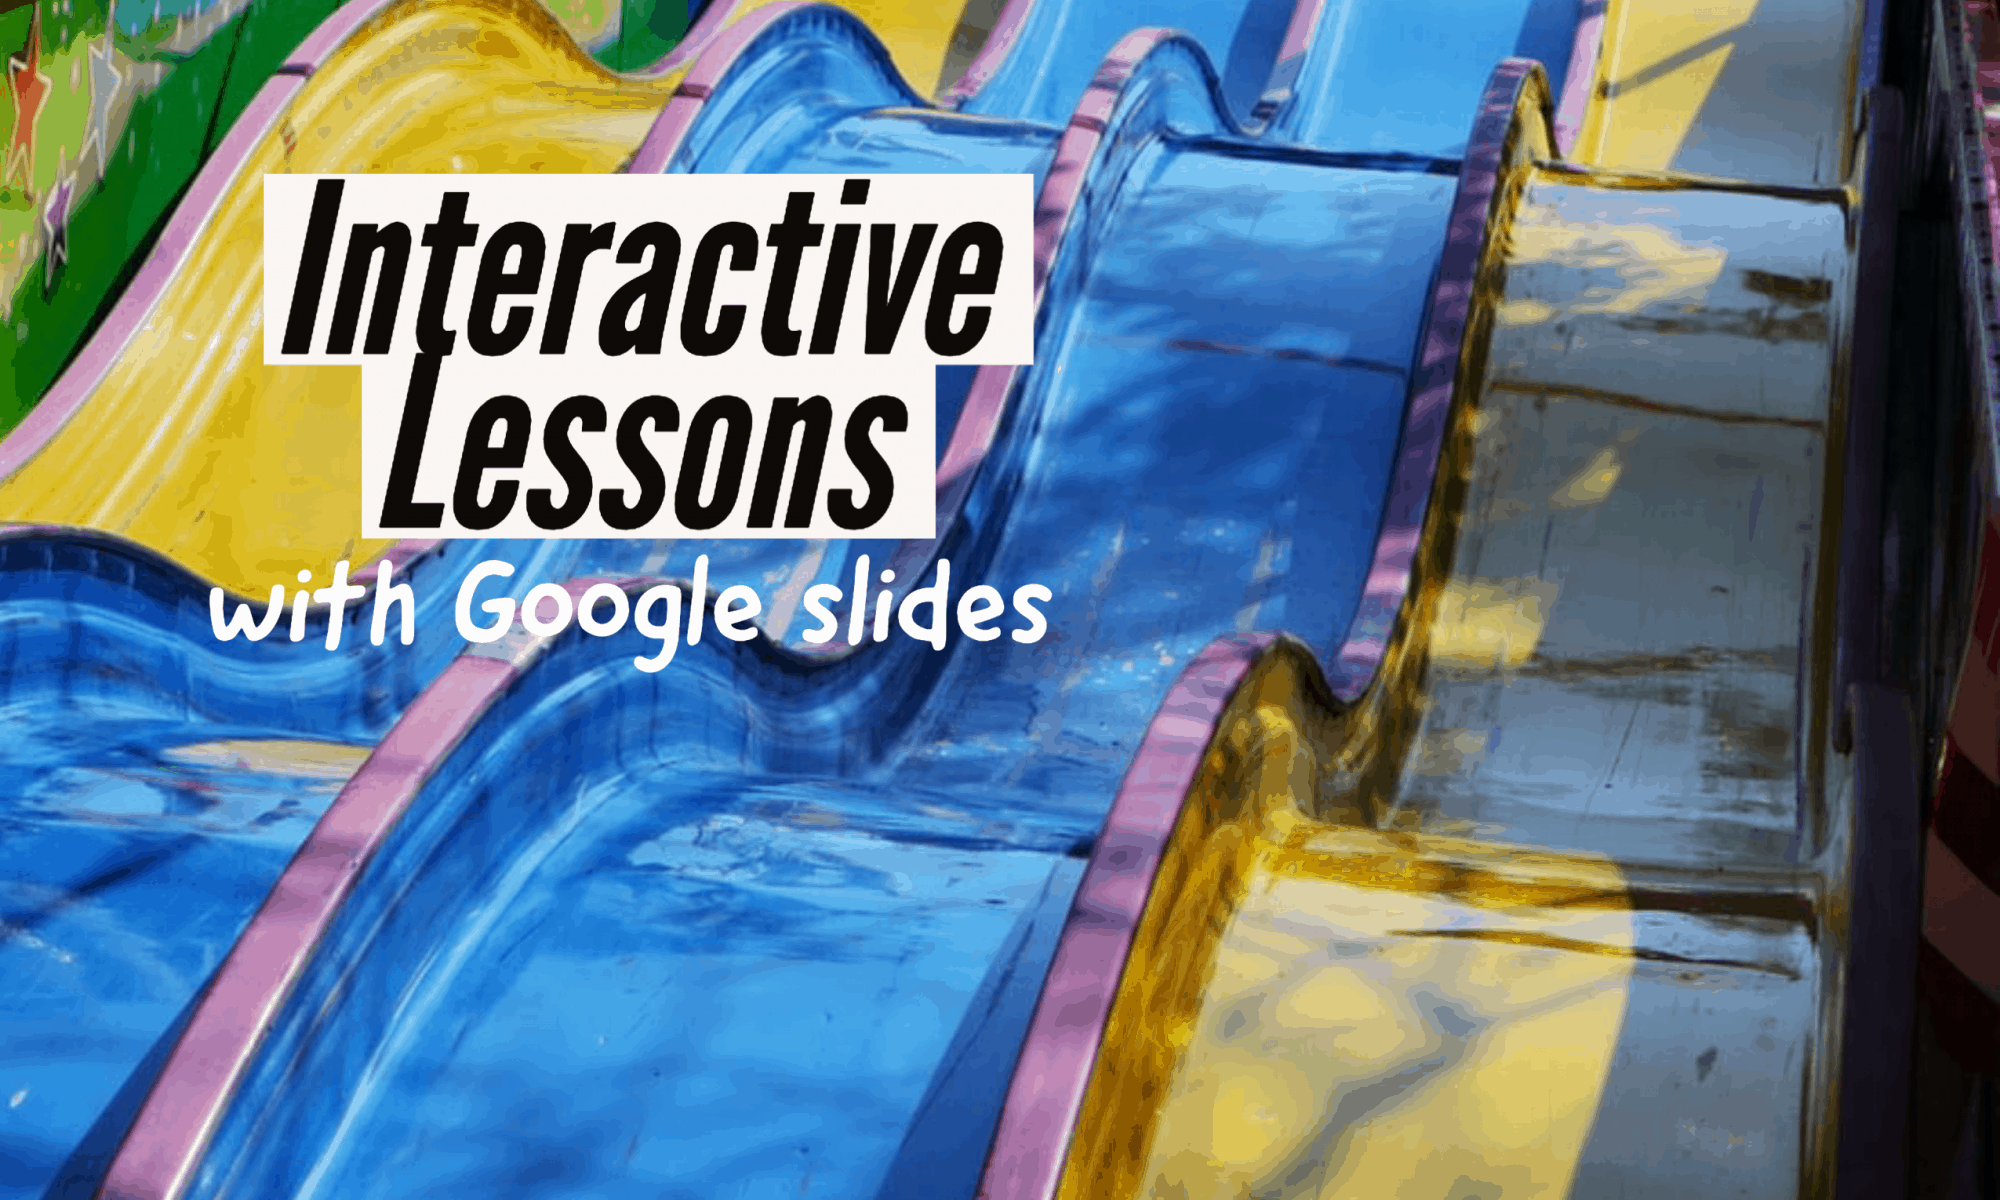 Lesson 2: Interactive Lessons with Google slides